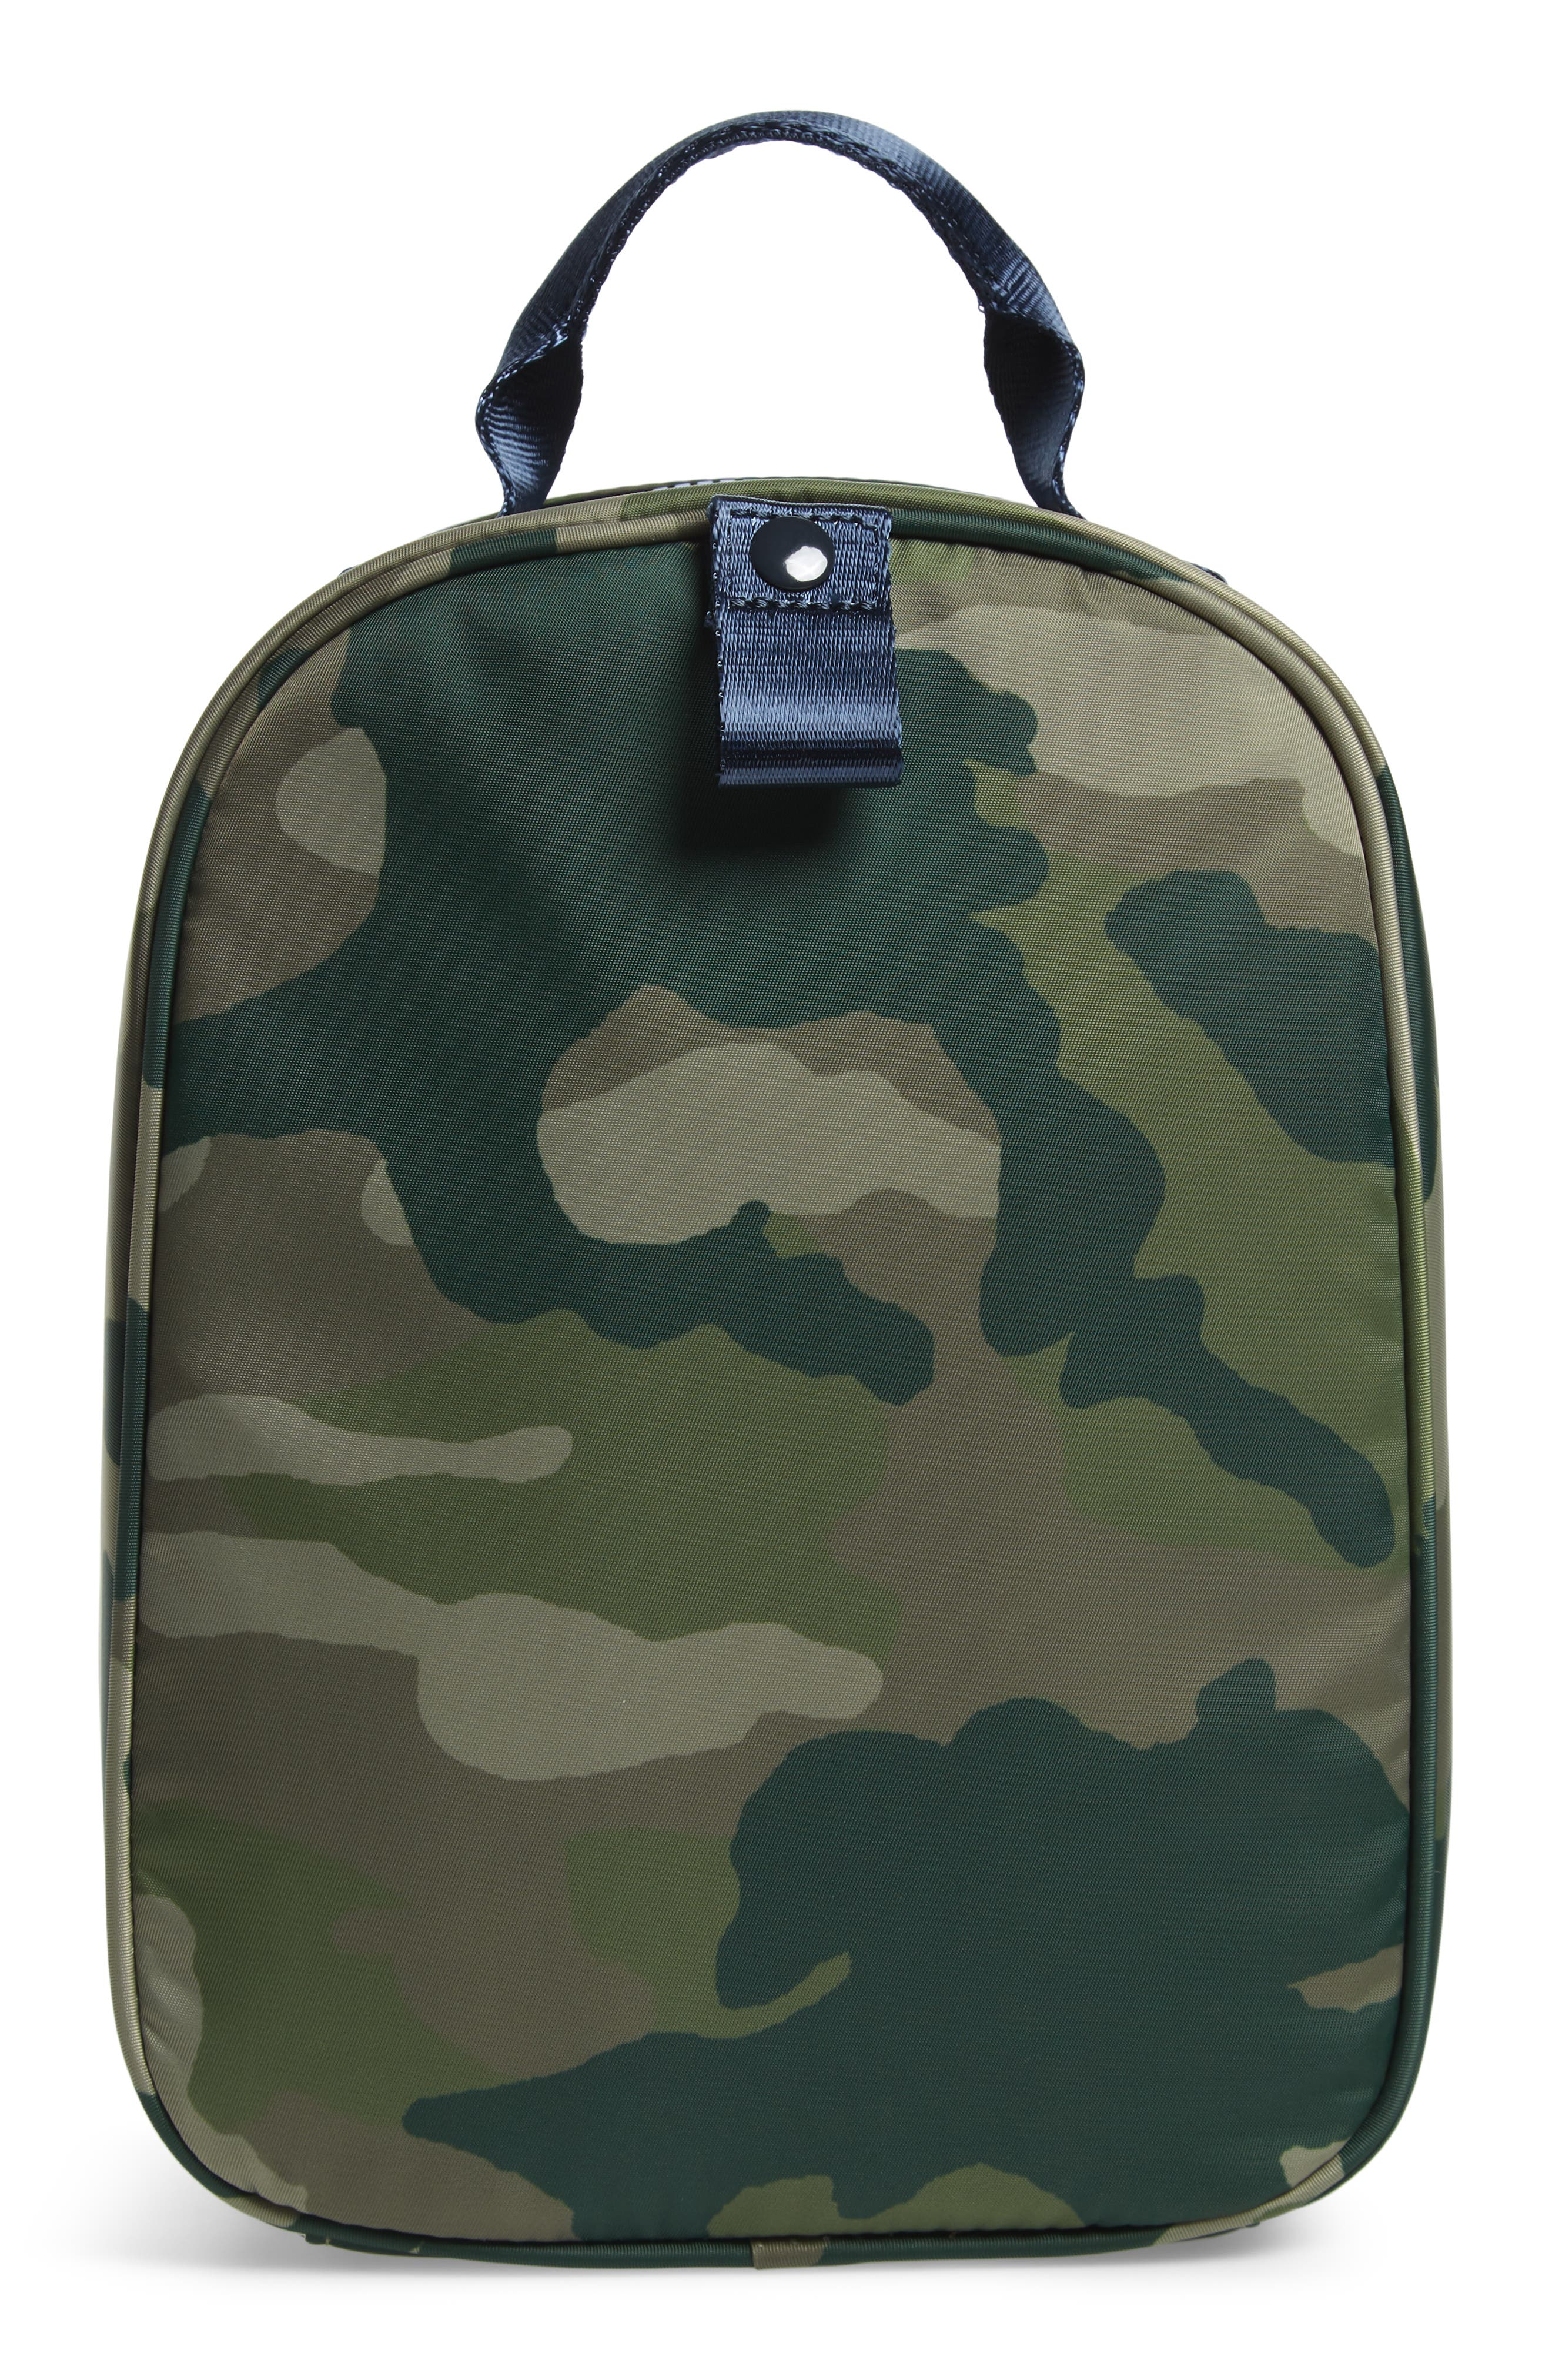 Camo Print Lunch Box,                             Alternate thumbnail 2, color,                             300